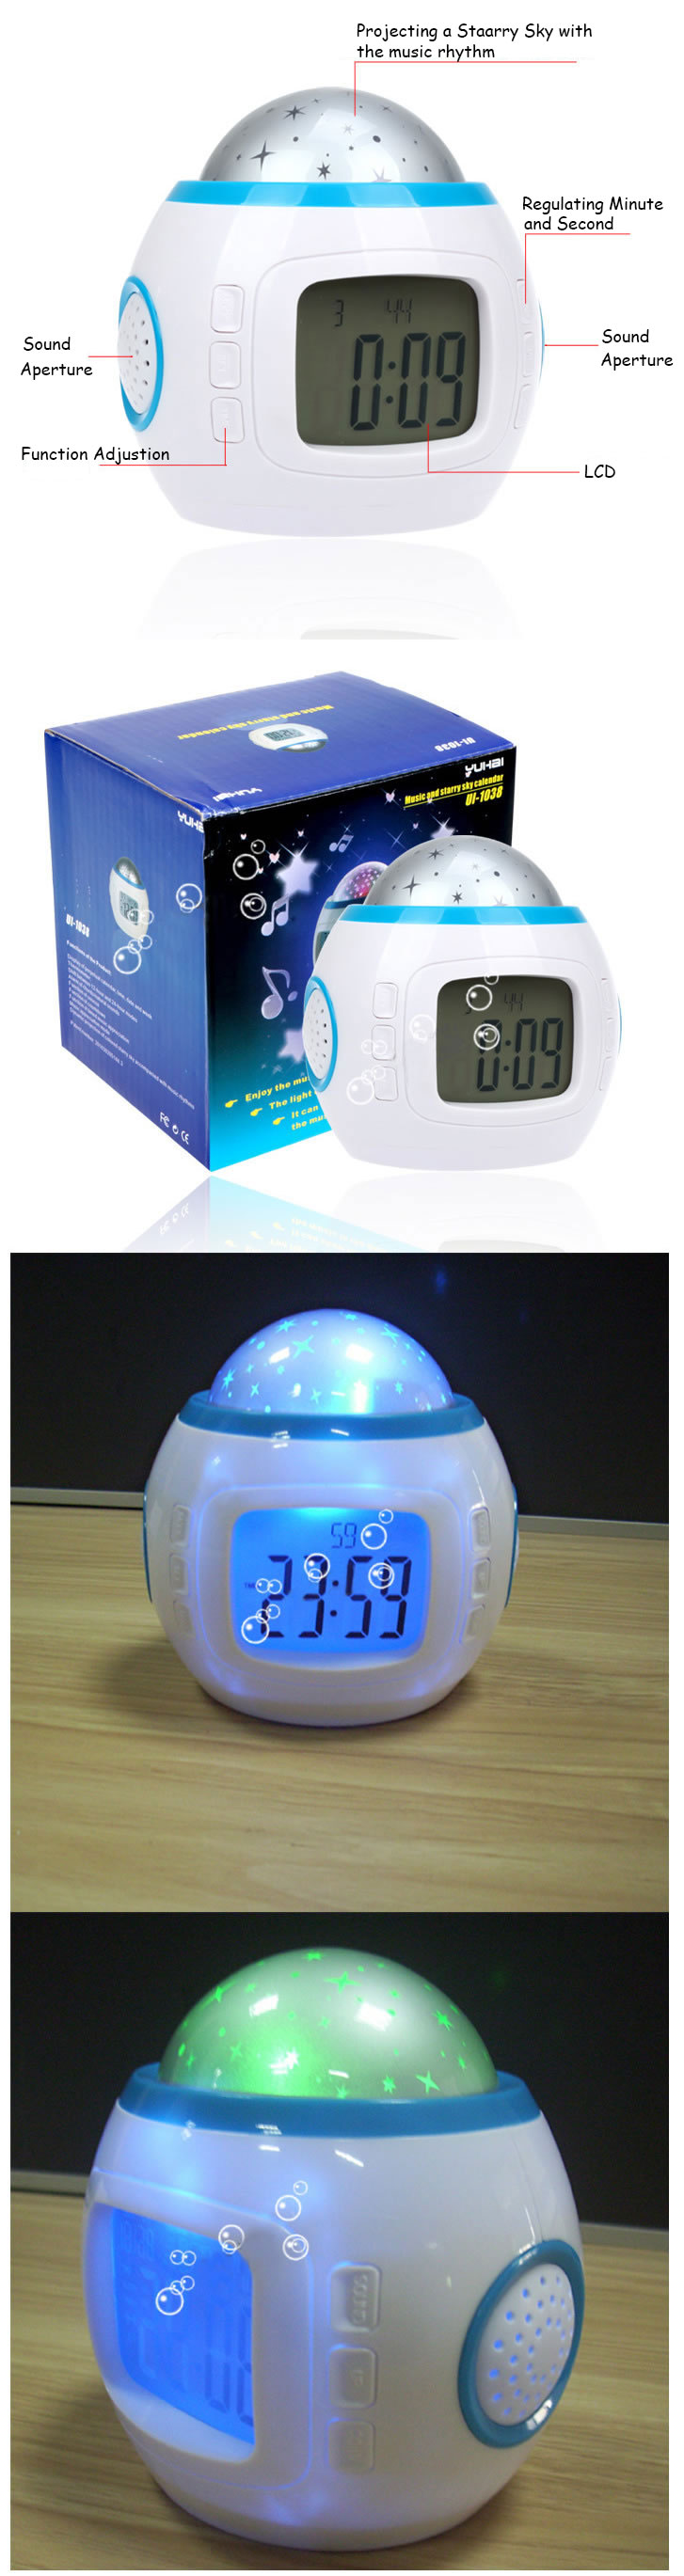 Digital night light projector alarm clock for kids room starry music thermometer ebay - Timer night light for toddlers ...